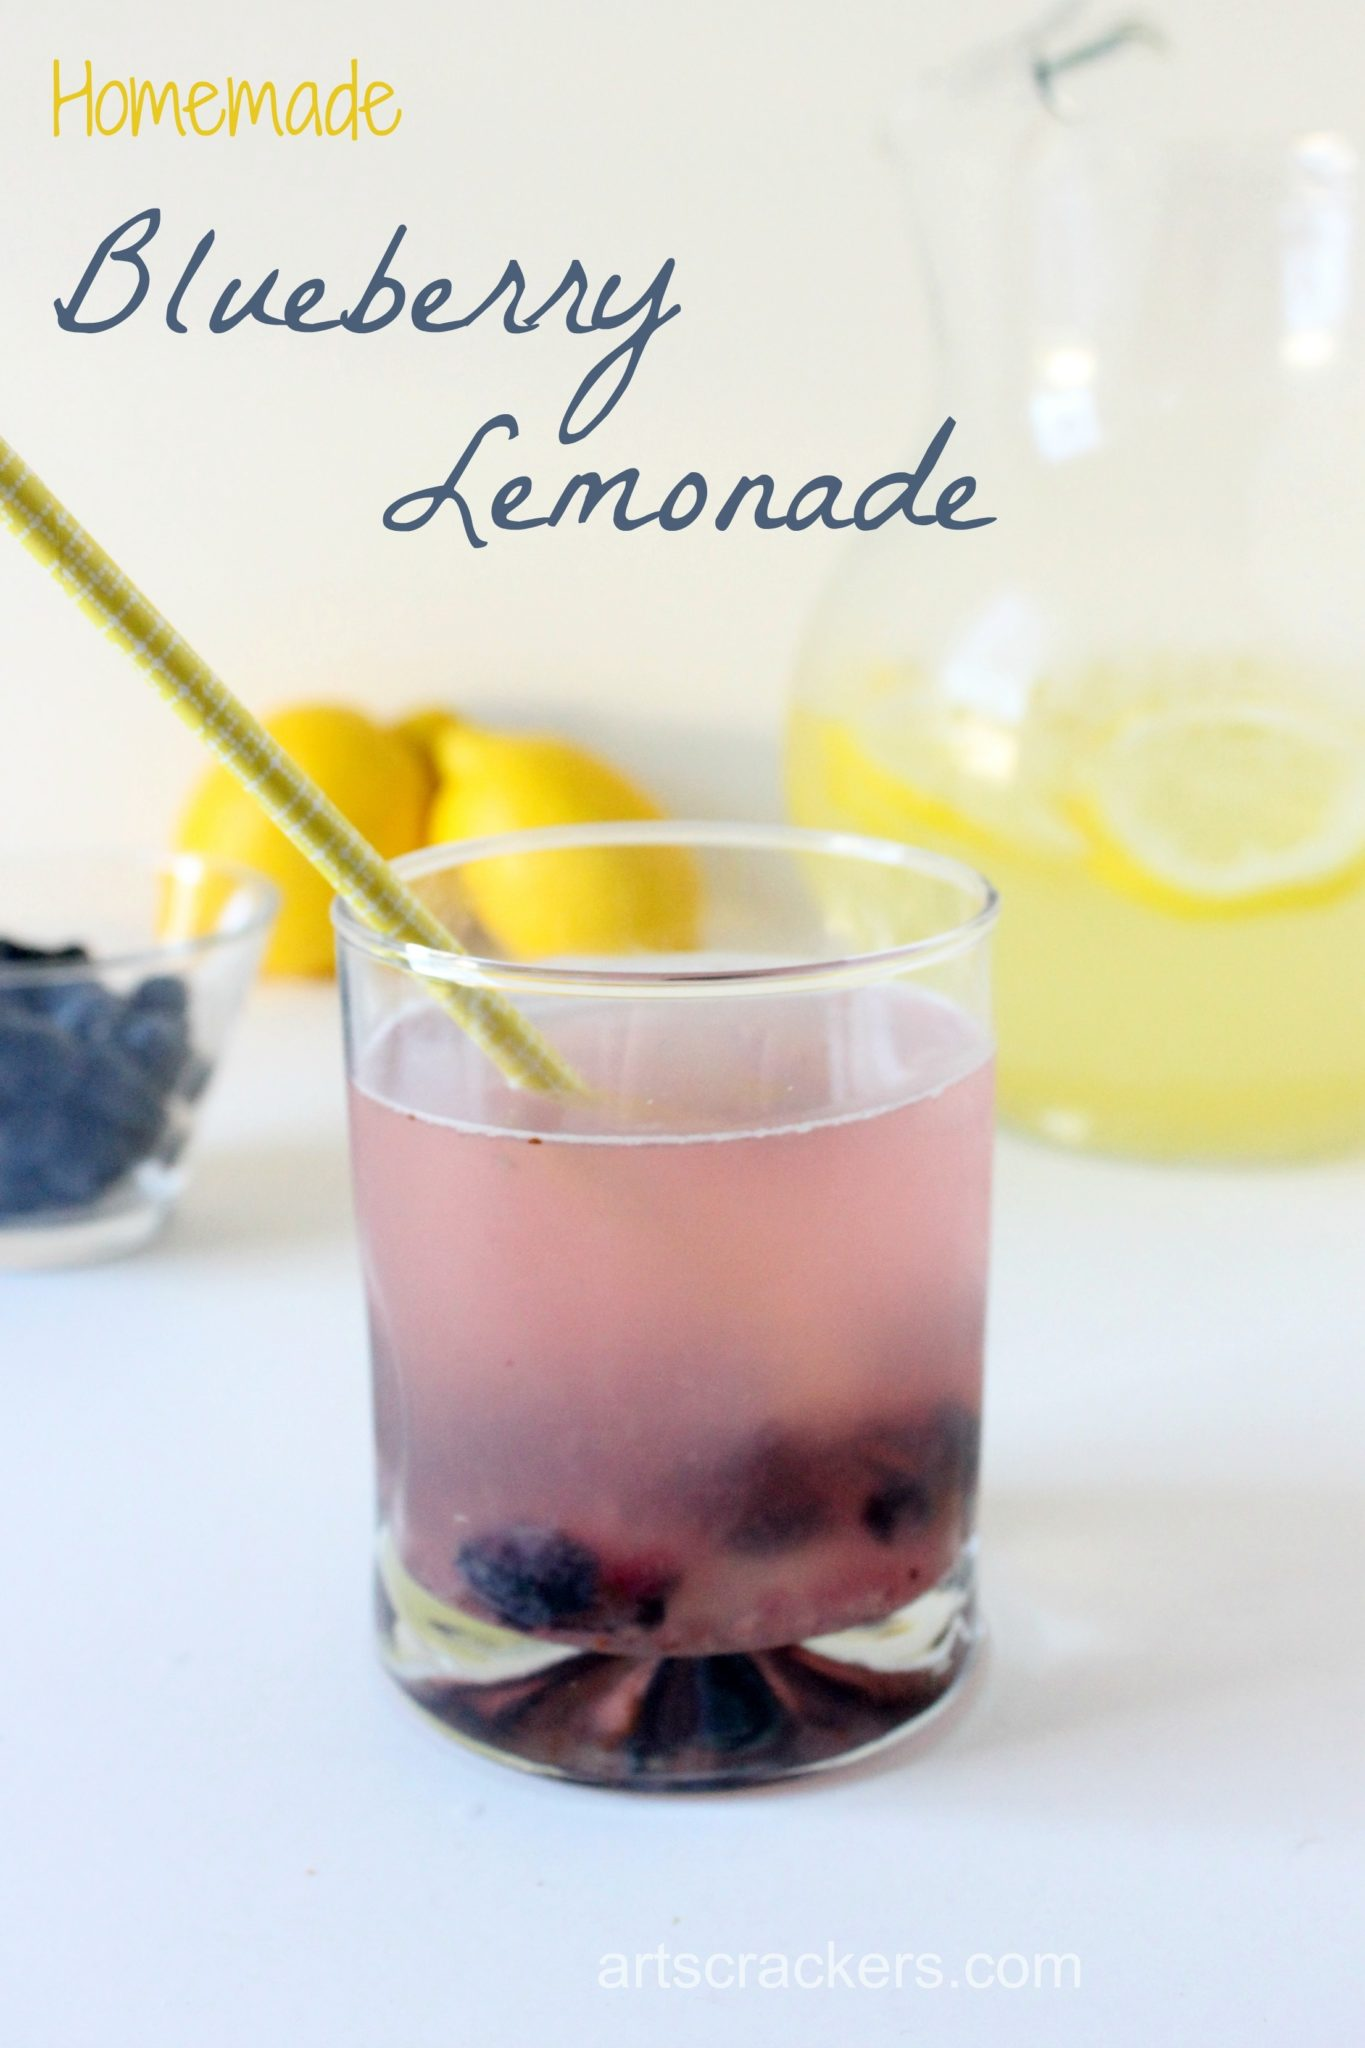 Homemade Refreshing Blueberry Lemonade. Click for the recipe.